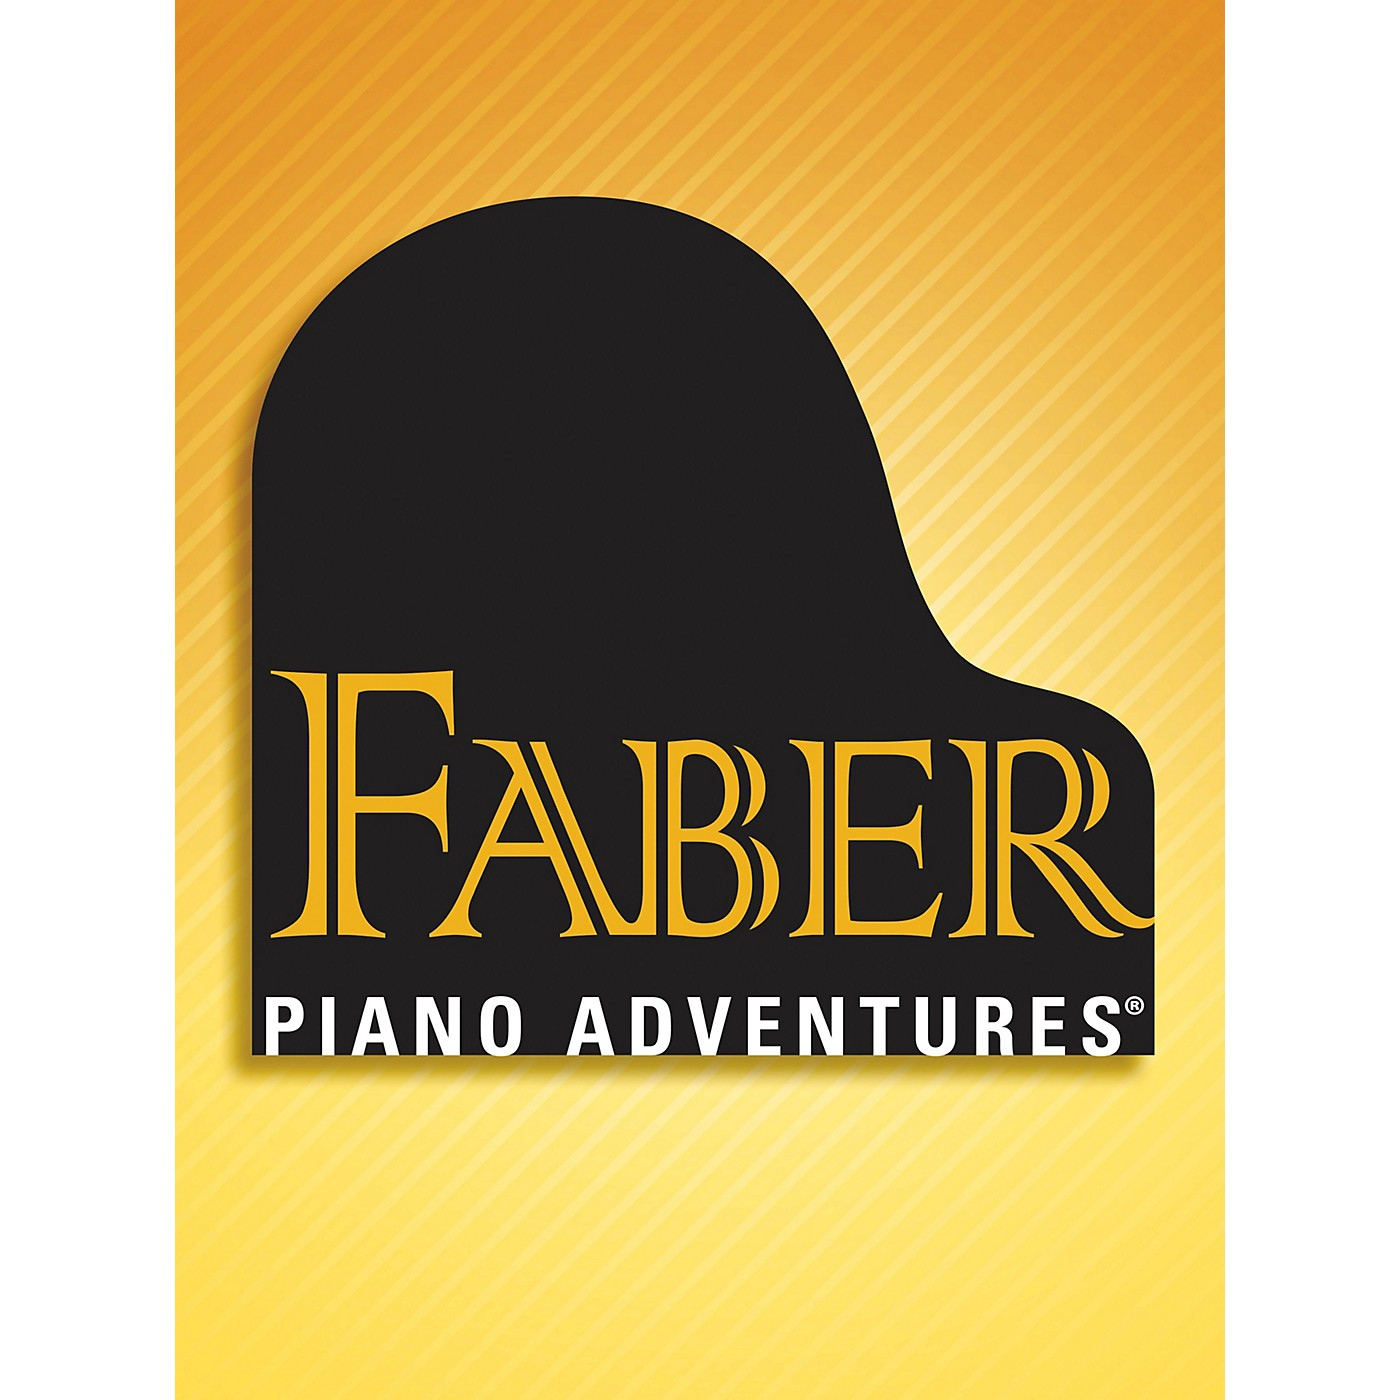 Faber Piano Adventures Accelerated Piano Adventures for the Older Beginner Faber Piano Disk by Nancy Faber (Level Primer/Lvl 1) thumbnail